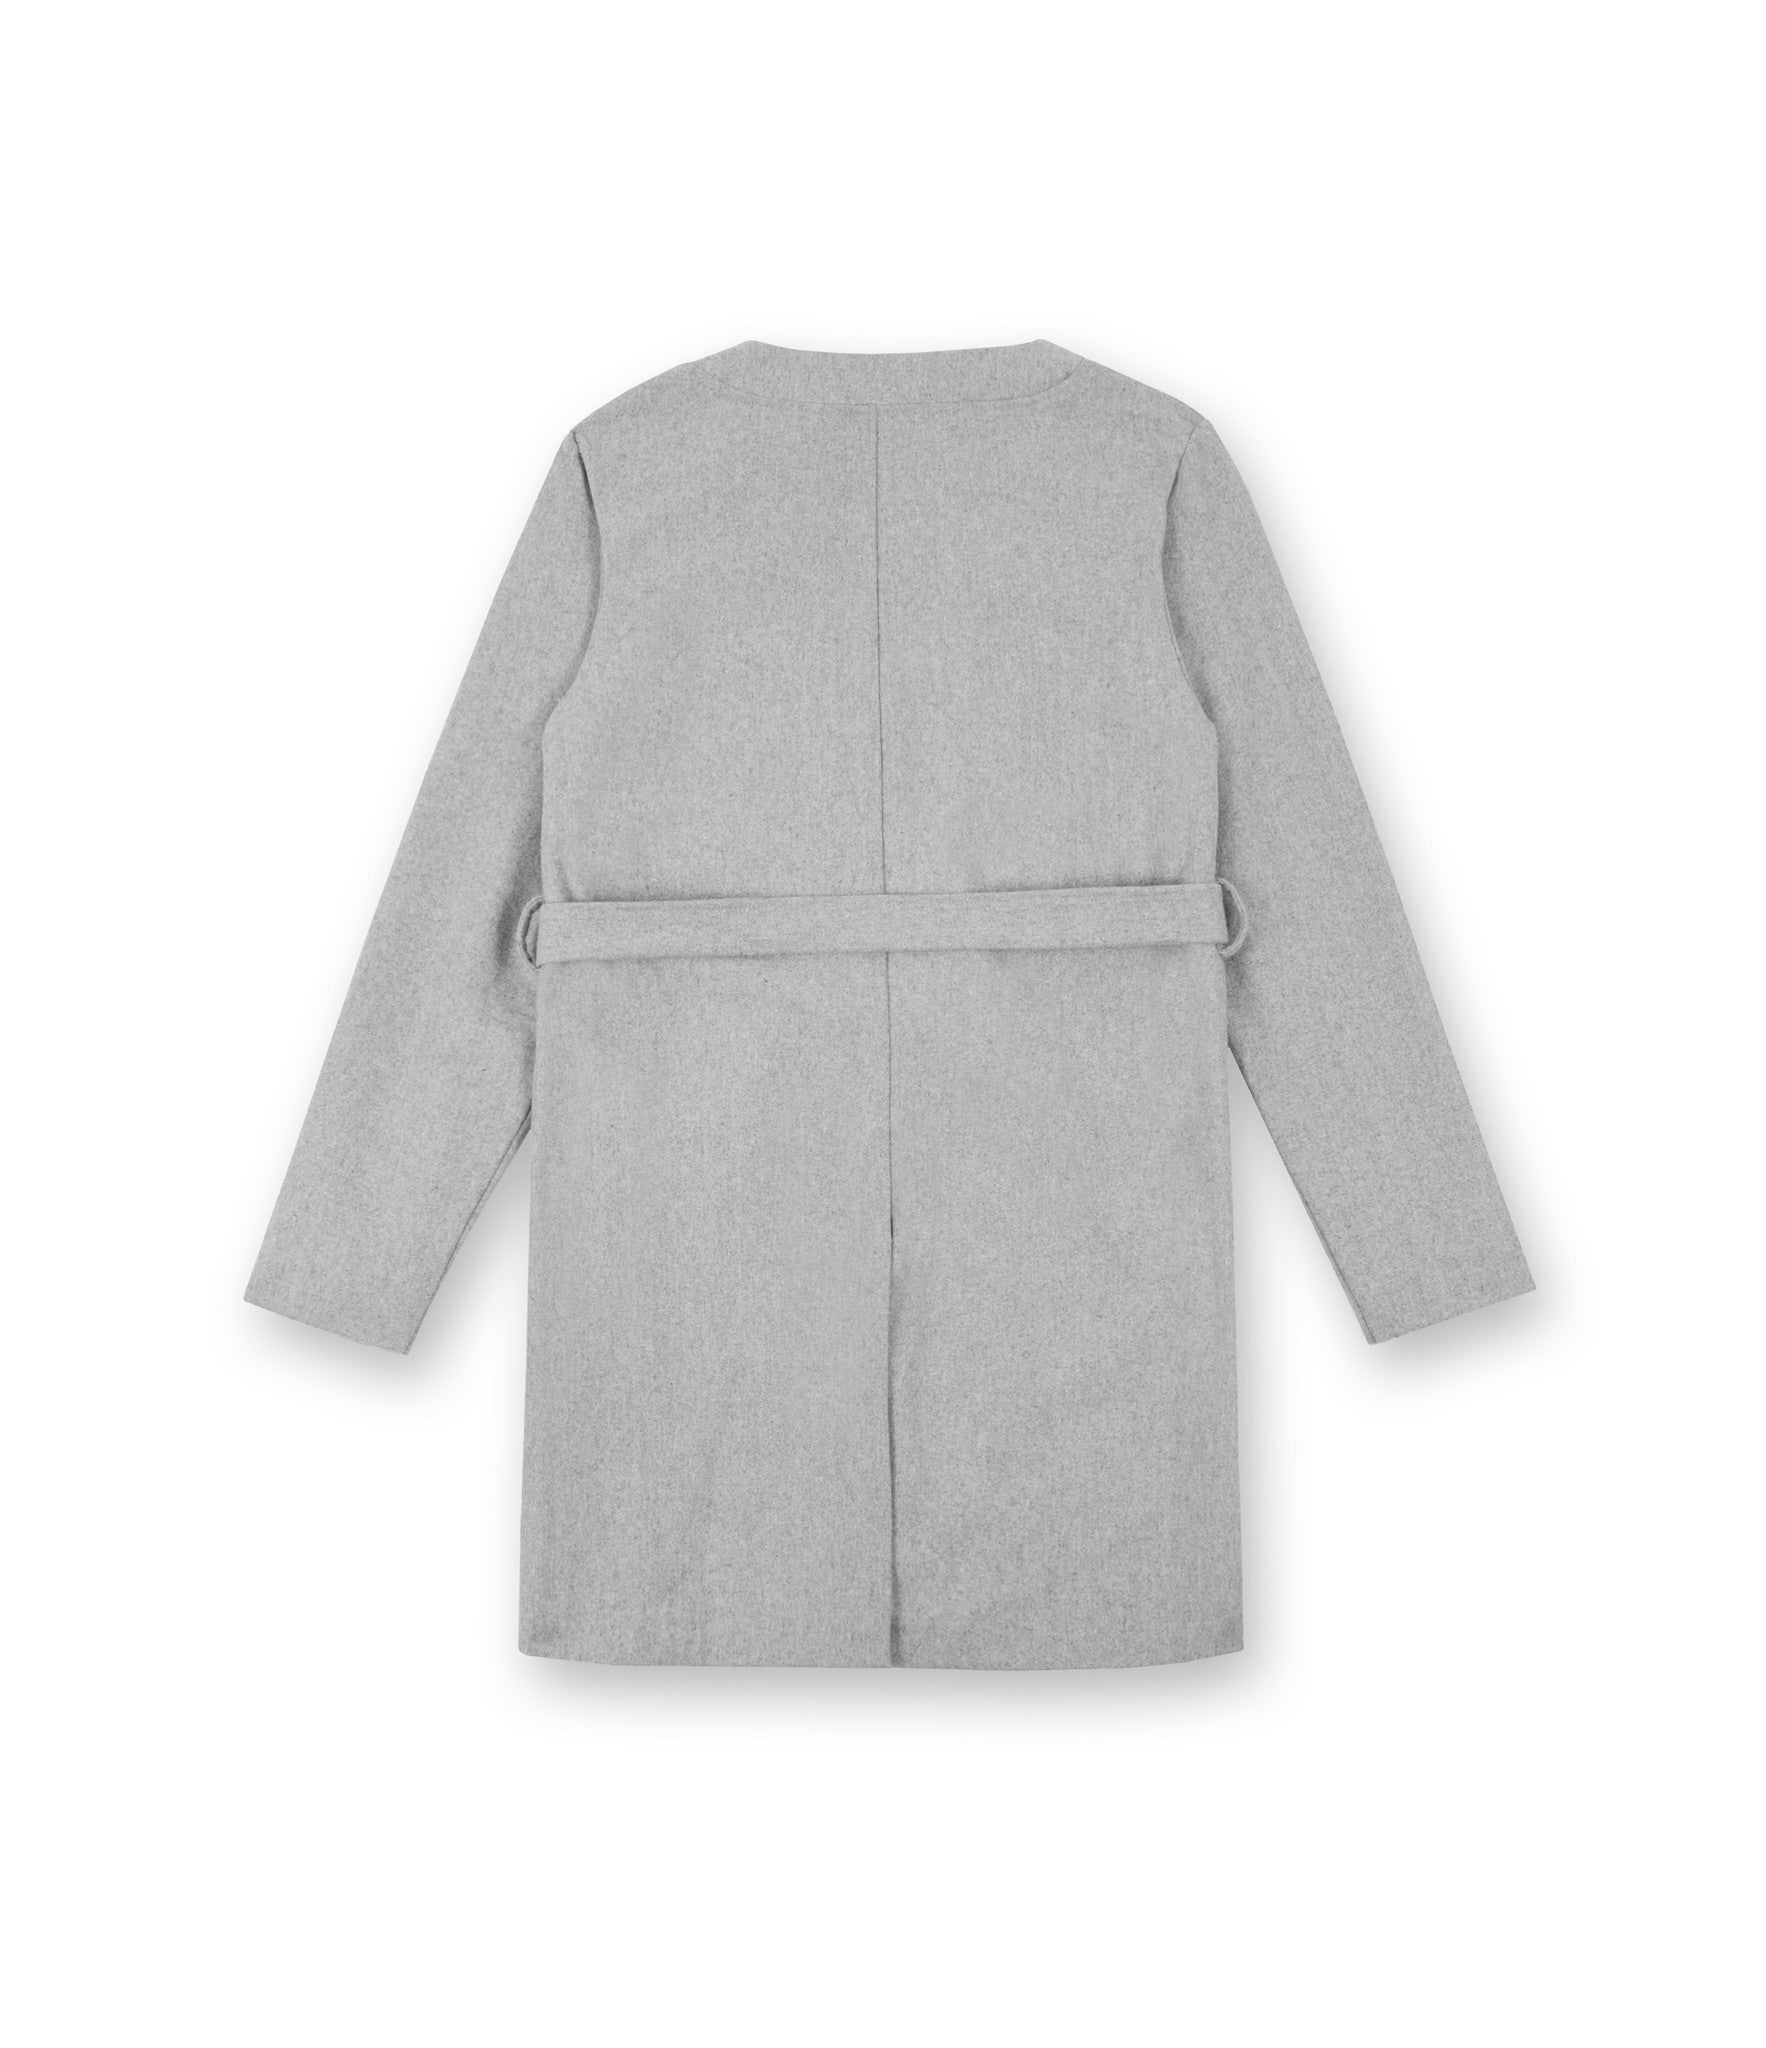 KM070 Wool Blend Kimono Coat - Grey - underated london - underatedco - 2